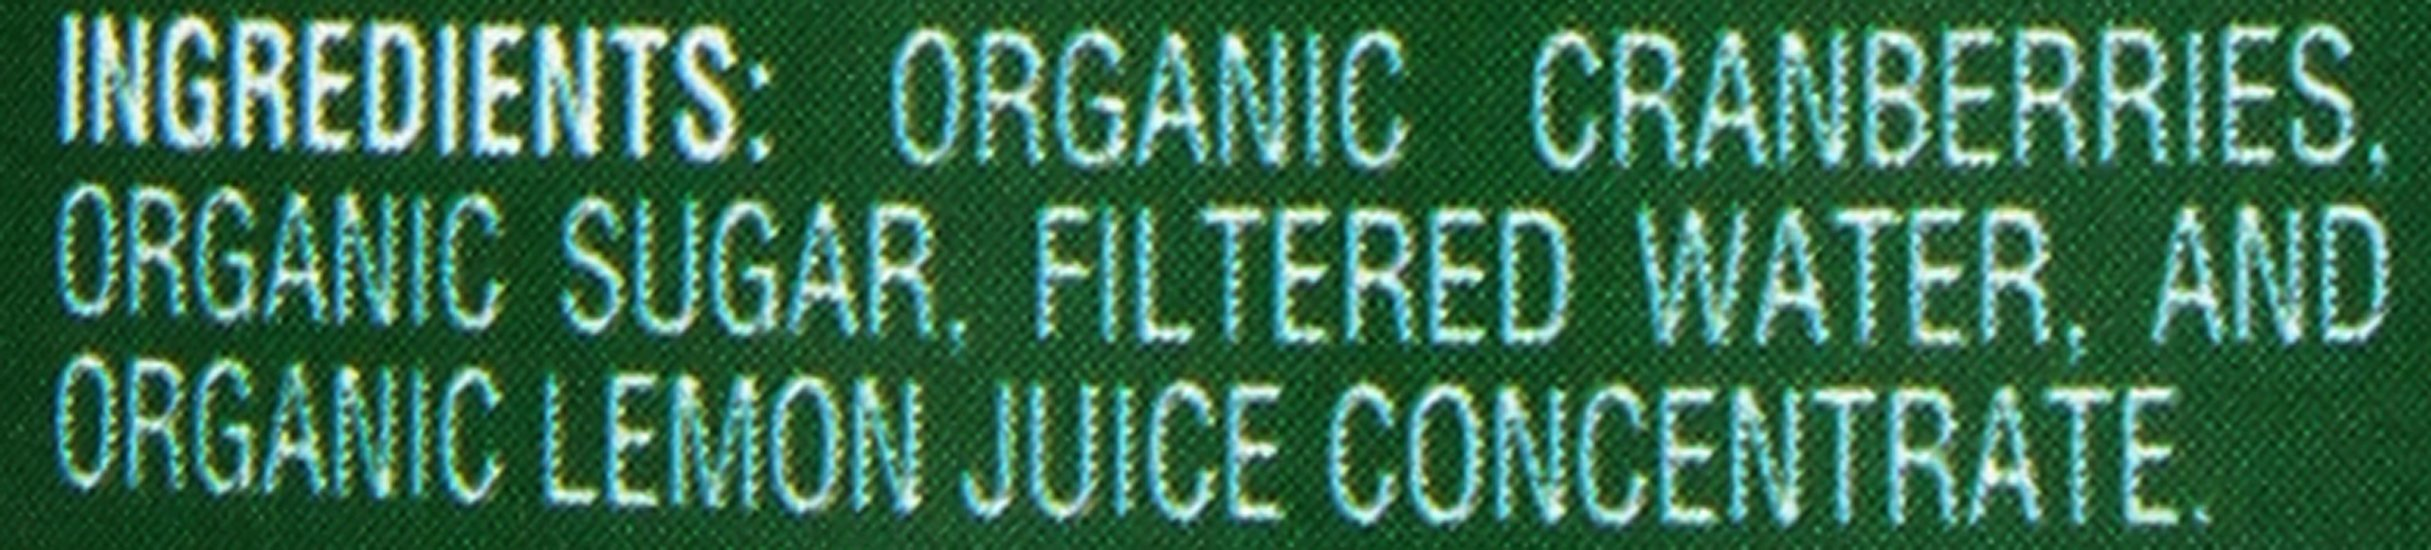 Grown Right Organic Whole Cranberry Sauce, 14 oz by Grown Right (Image #3)